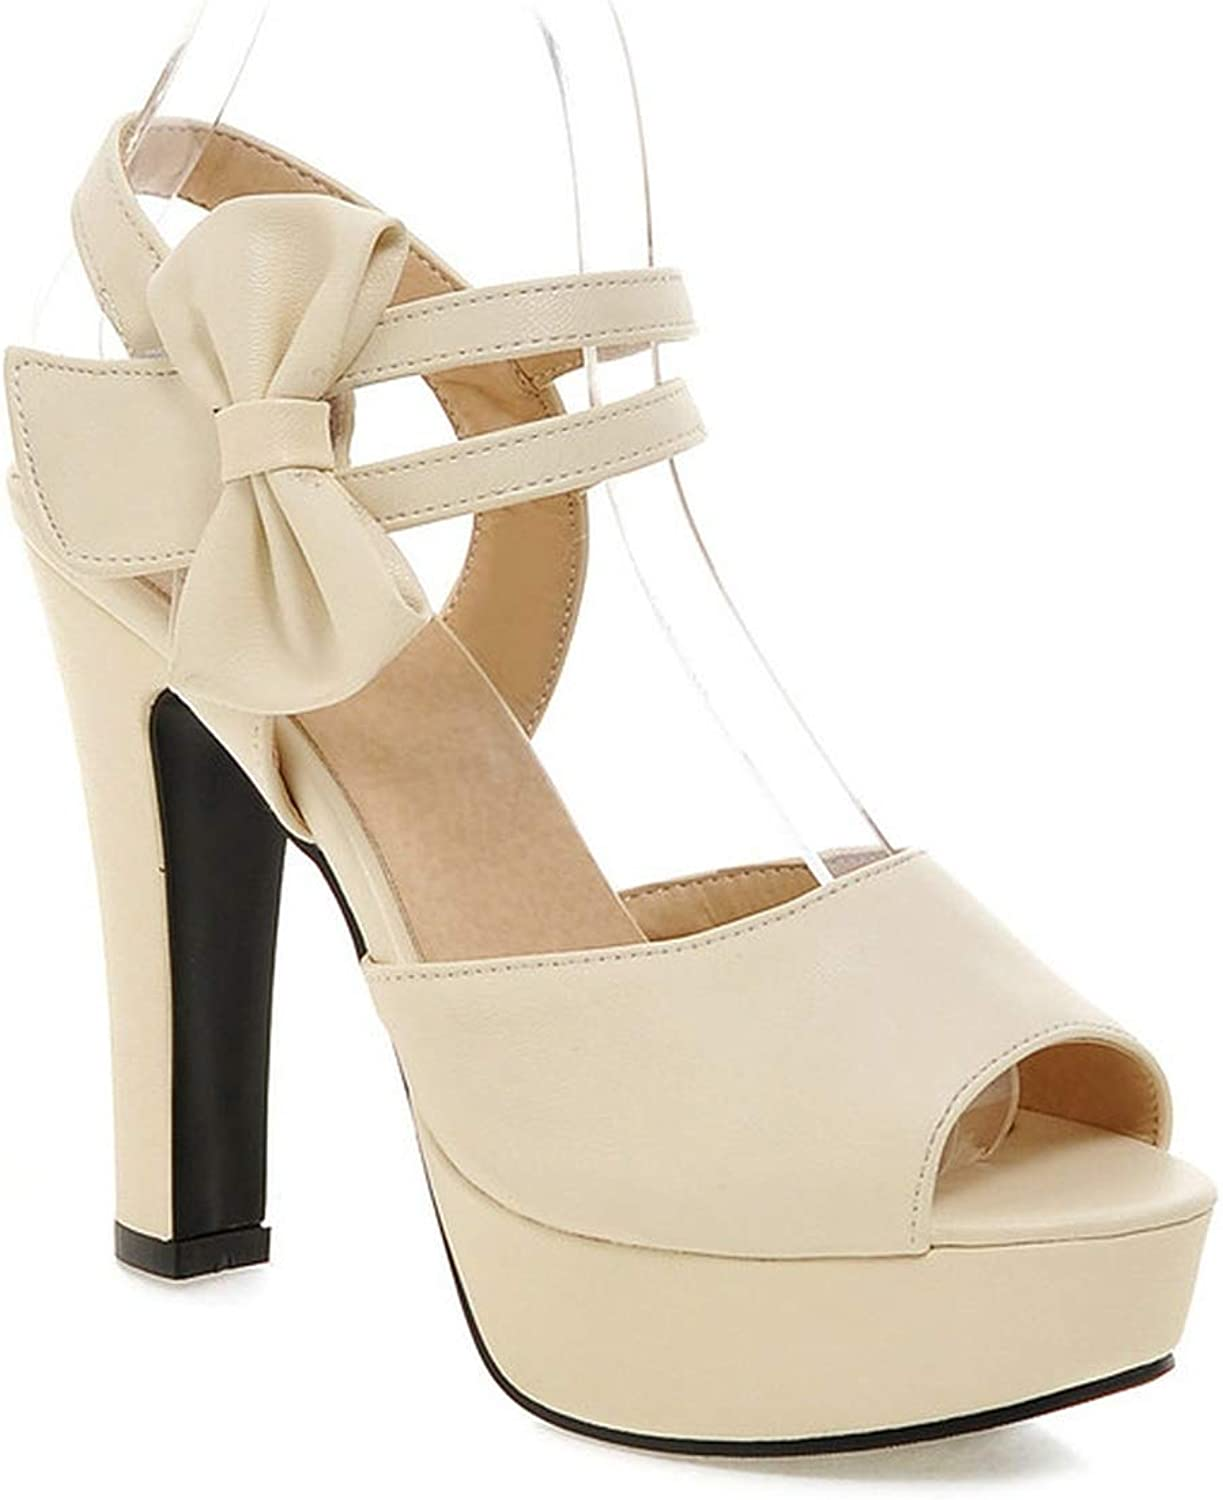 Women Sandals Platform Square High Heel Pu Leather Buckle Square High Heel Sexy Pumps